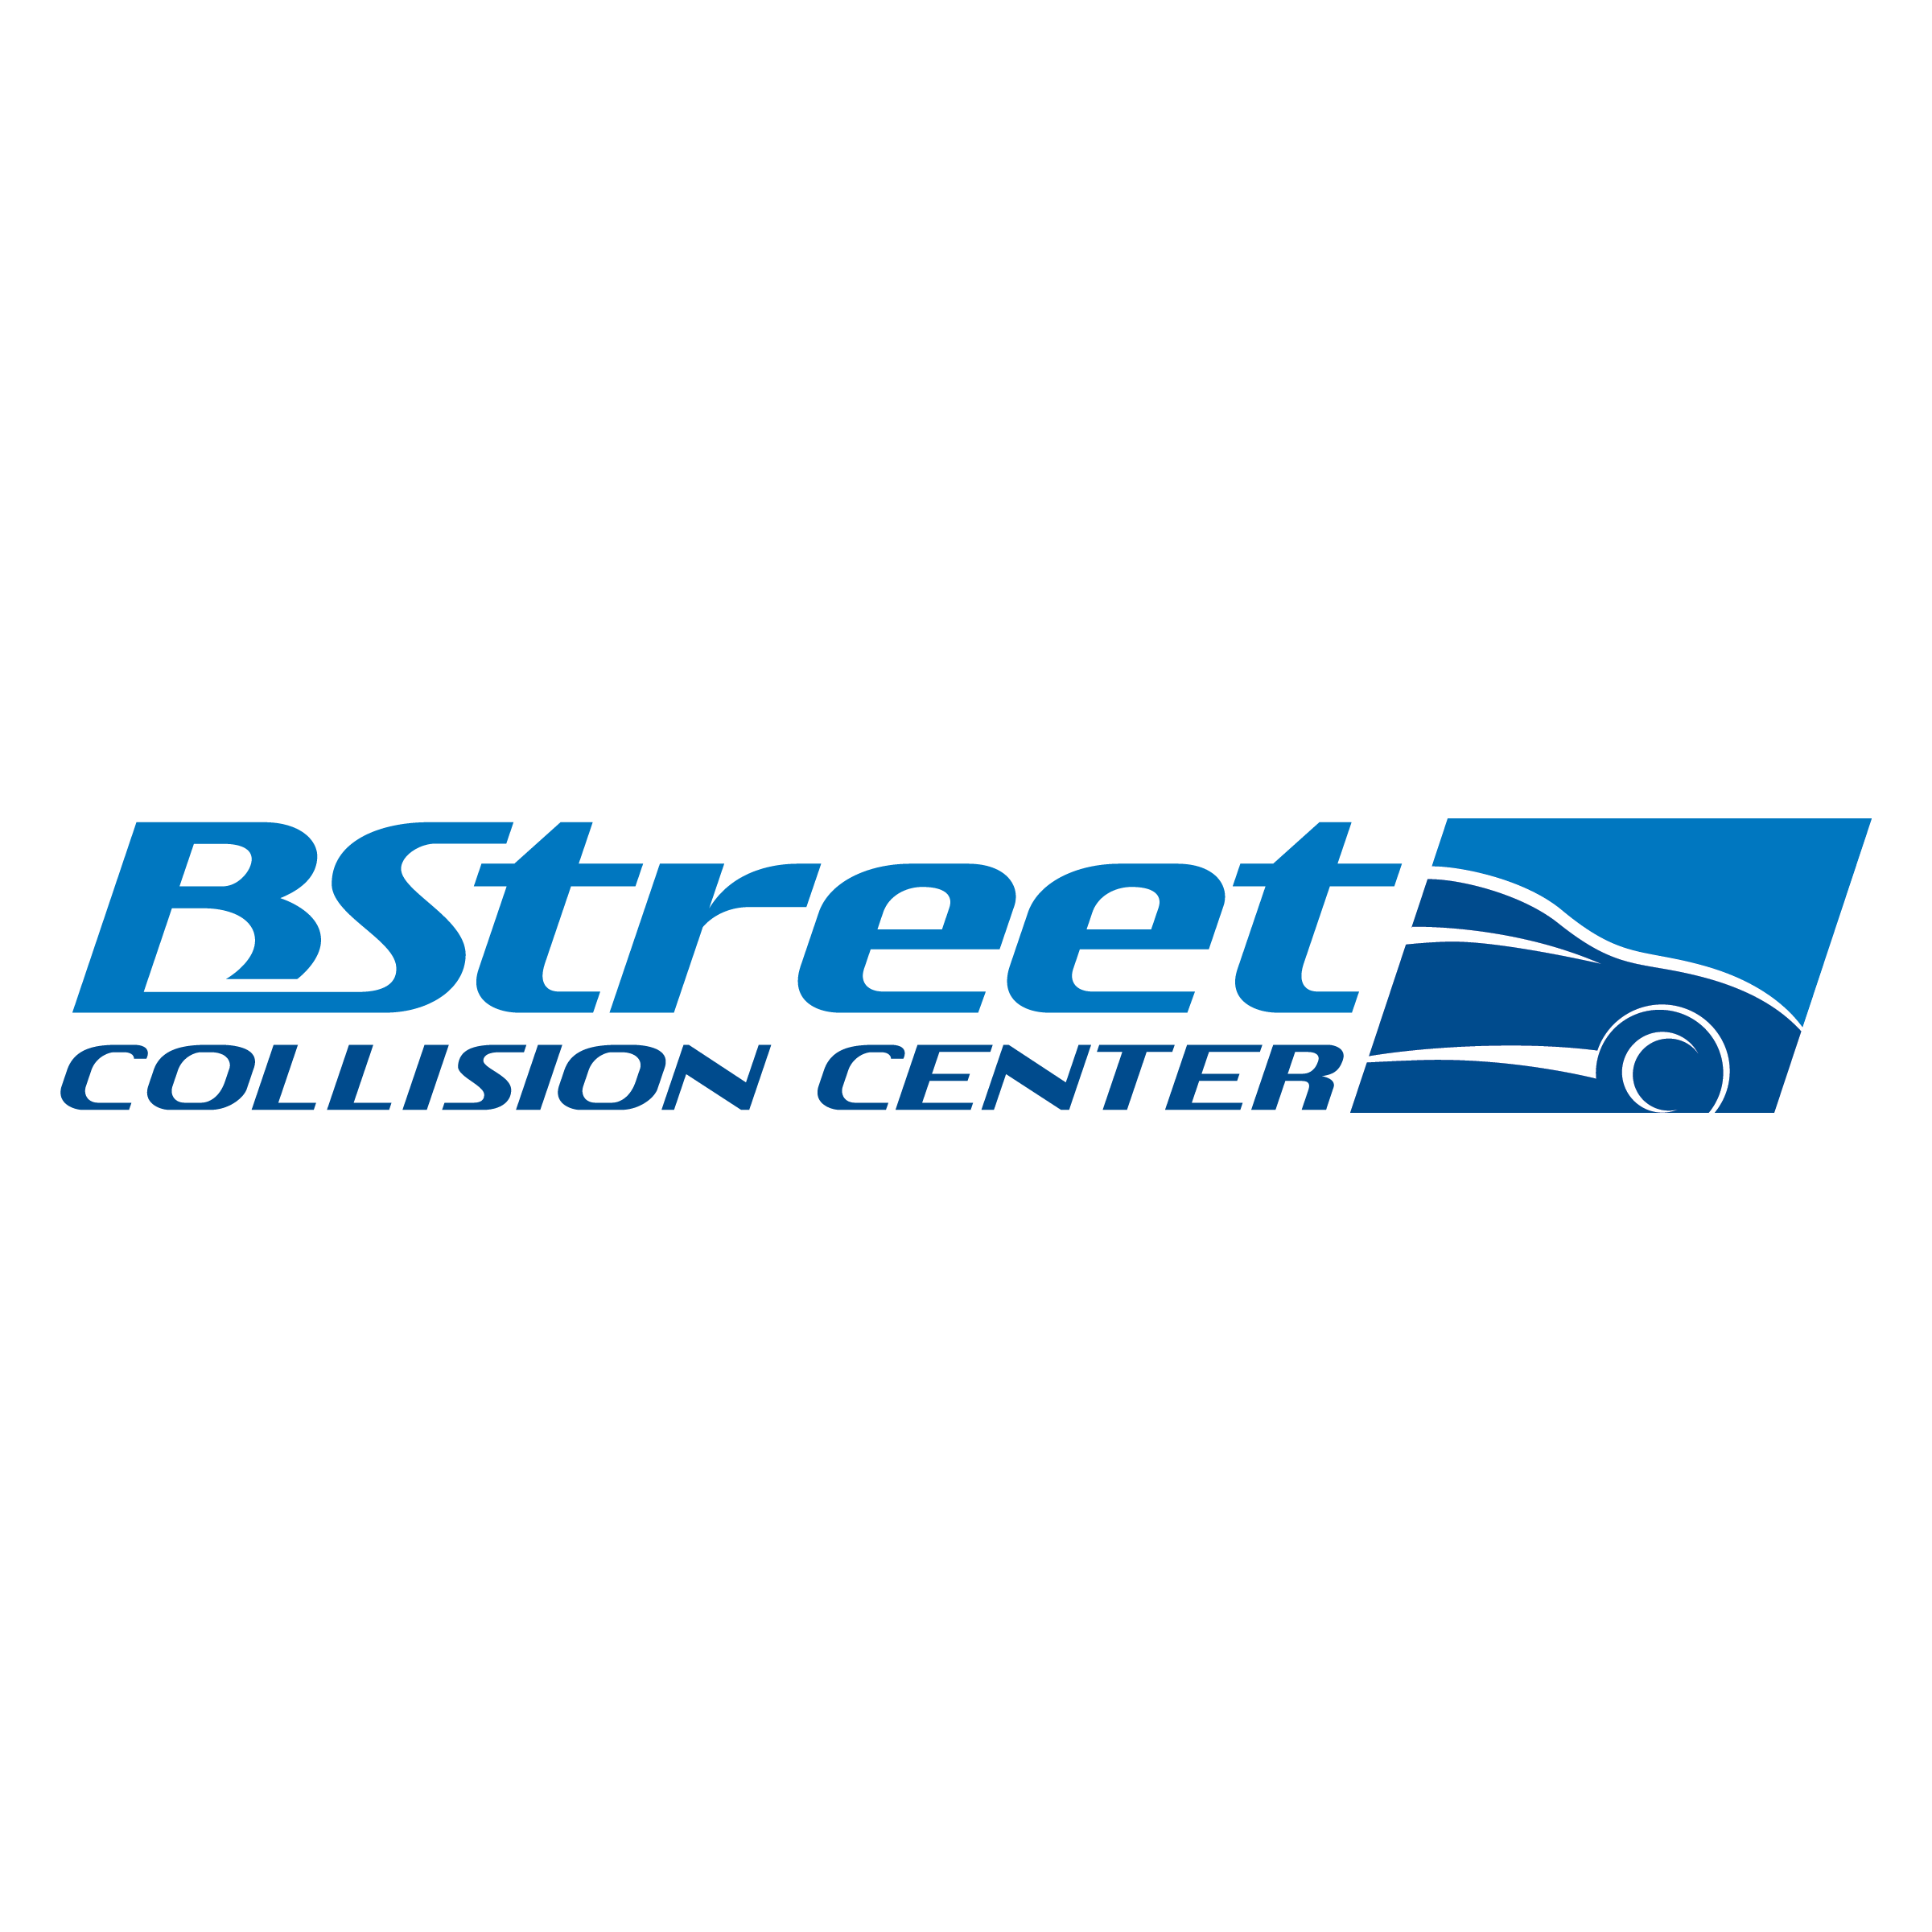 Legends Kansas City Location - B Street Collision Center